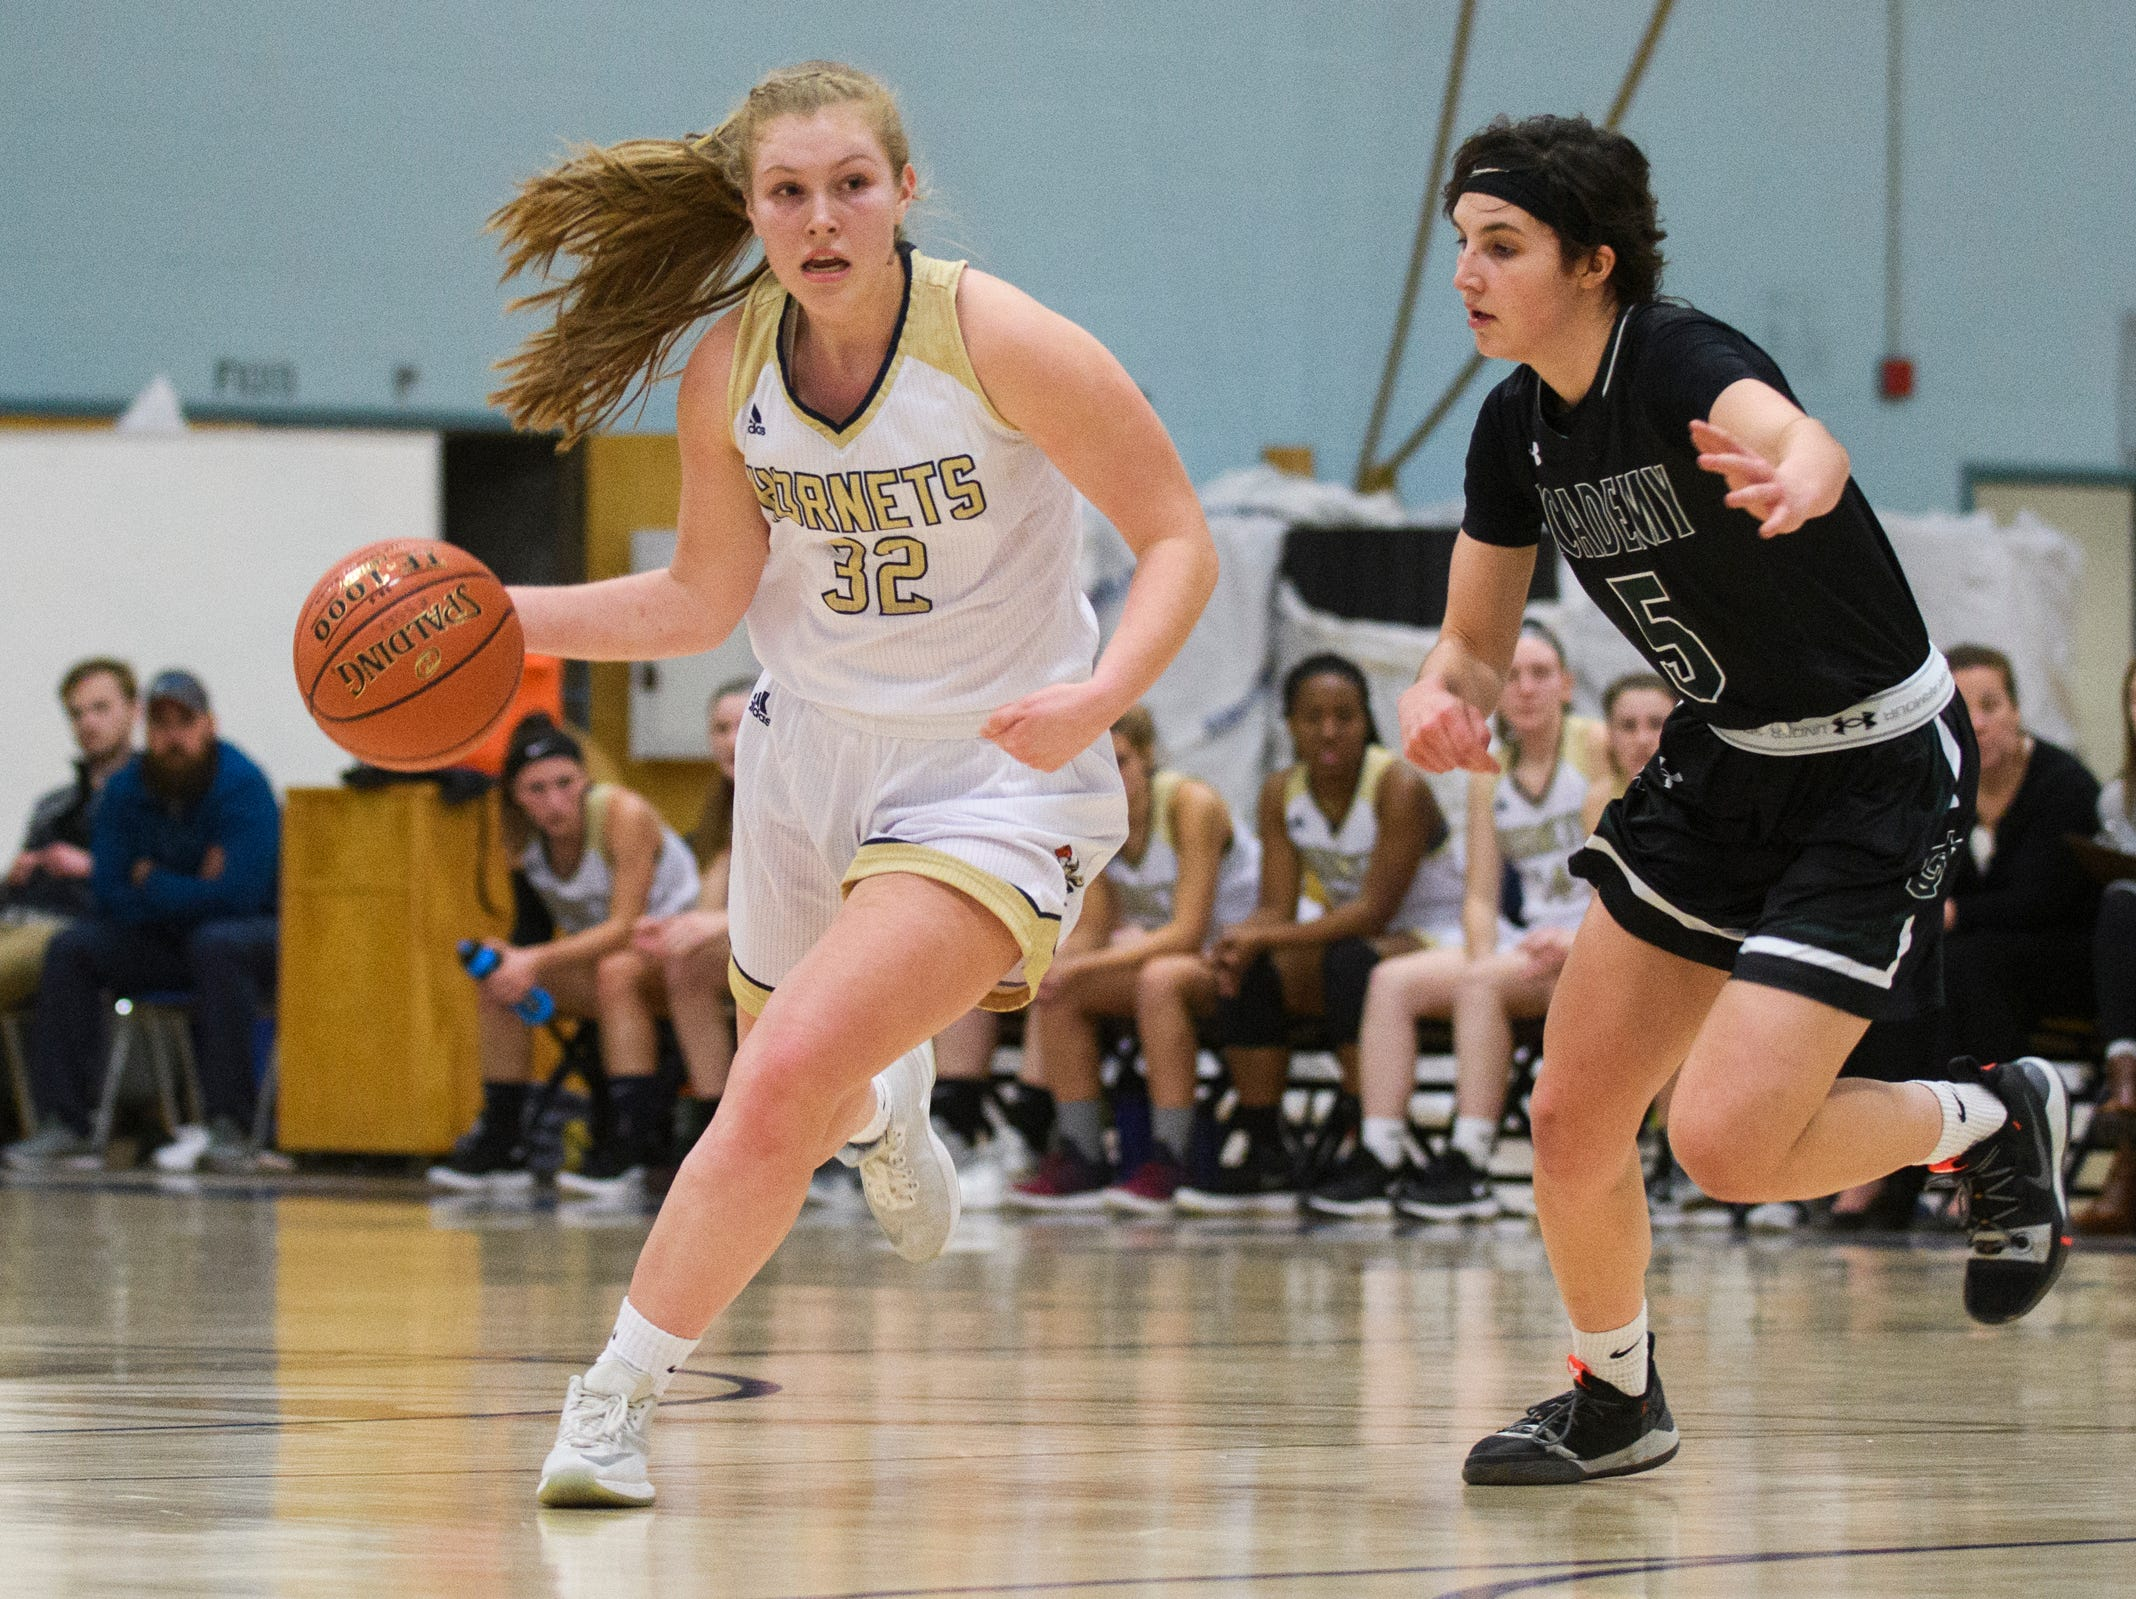 Essex's Sarah Coulter (32) drives to the hoop past St. Johnsbury's Sadie Stetson (5) during the girls basketball game between the St. Johnsbury Hilltoppers and the Essex Hornets at Essex High School on Thursday night January 17, 2019 in Essex.